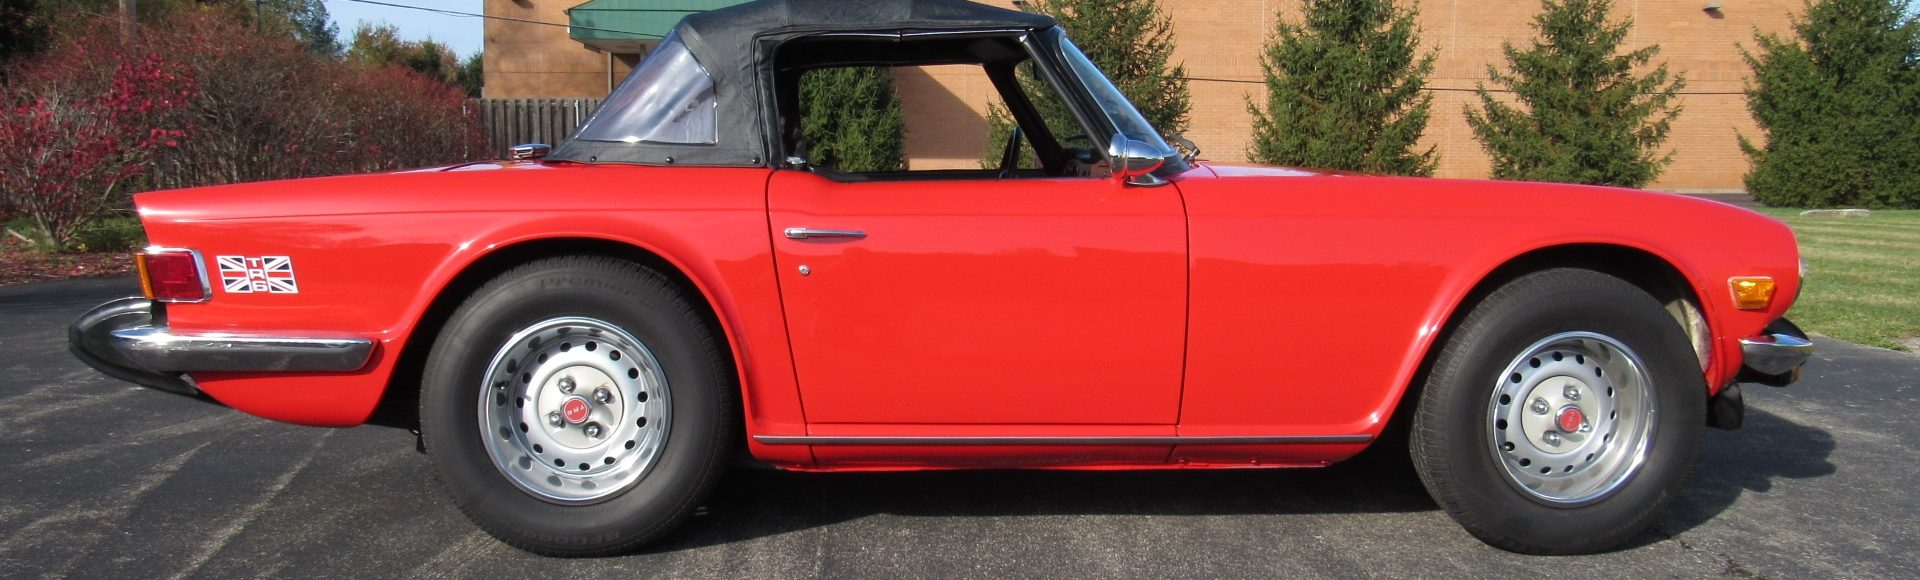 1975 Triumph TR6, Fully Restored, SOLD!